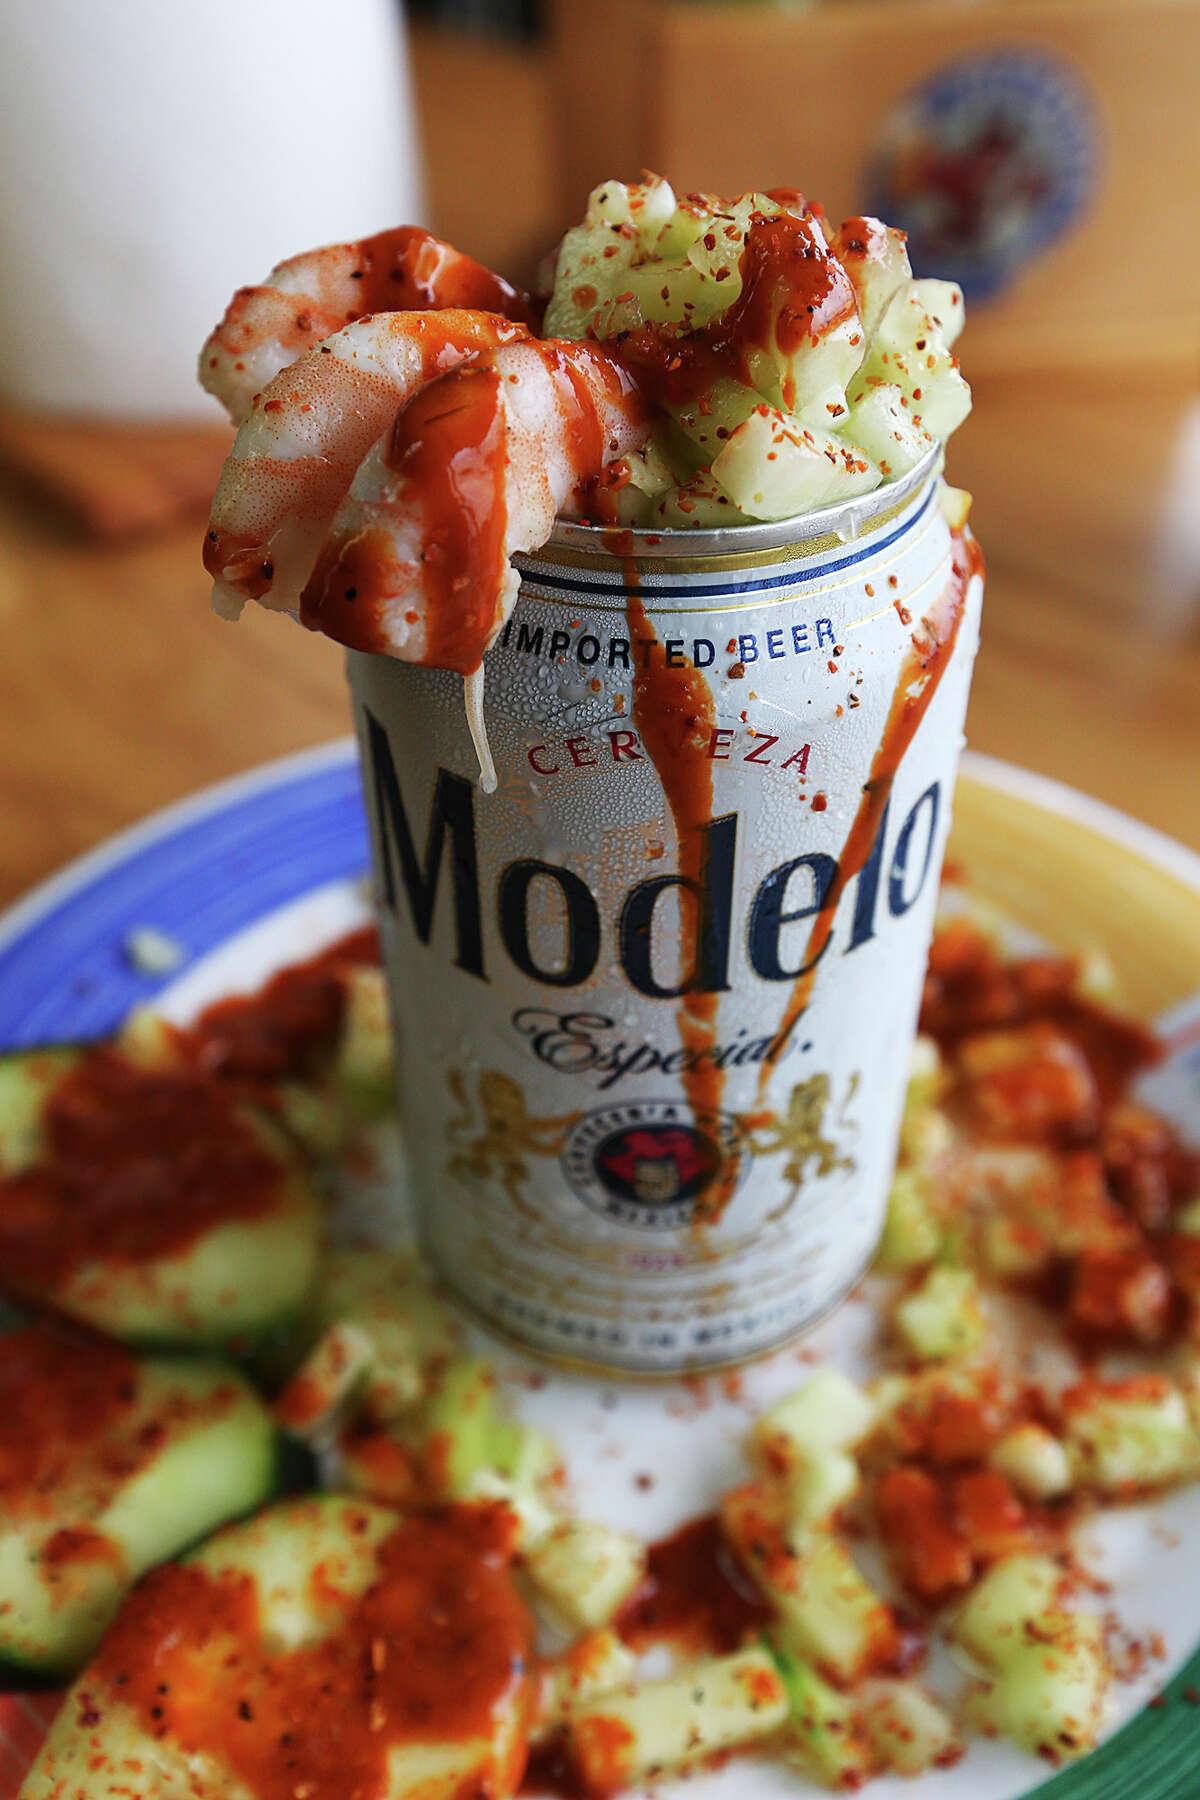 The cerveza preparada comes with shrimp, cucumbers and a hot sauce at Las Islas Marias Mexican seafood restaurant.